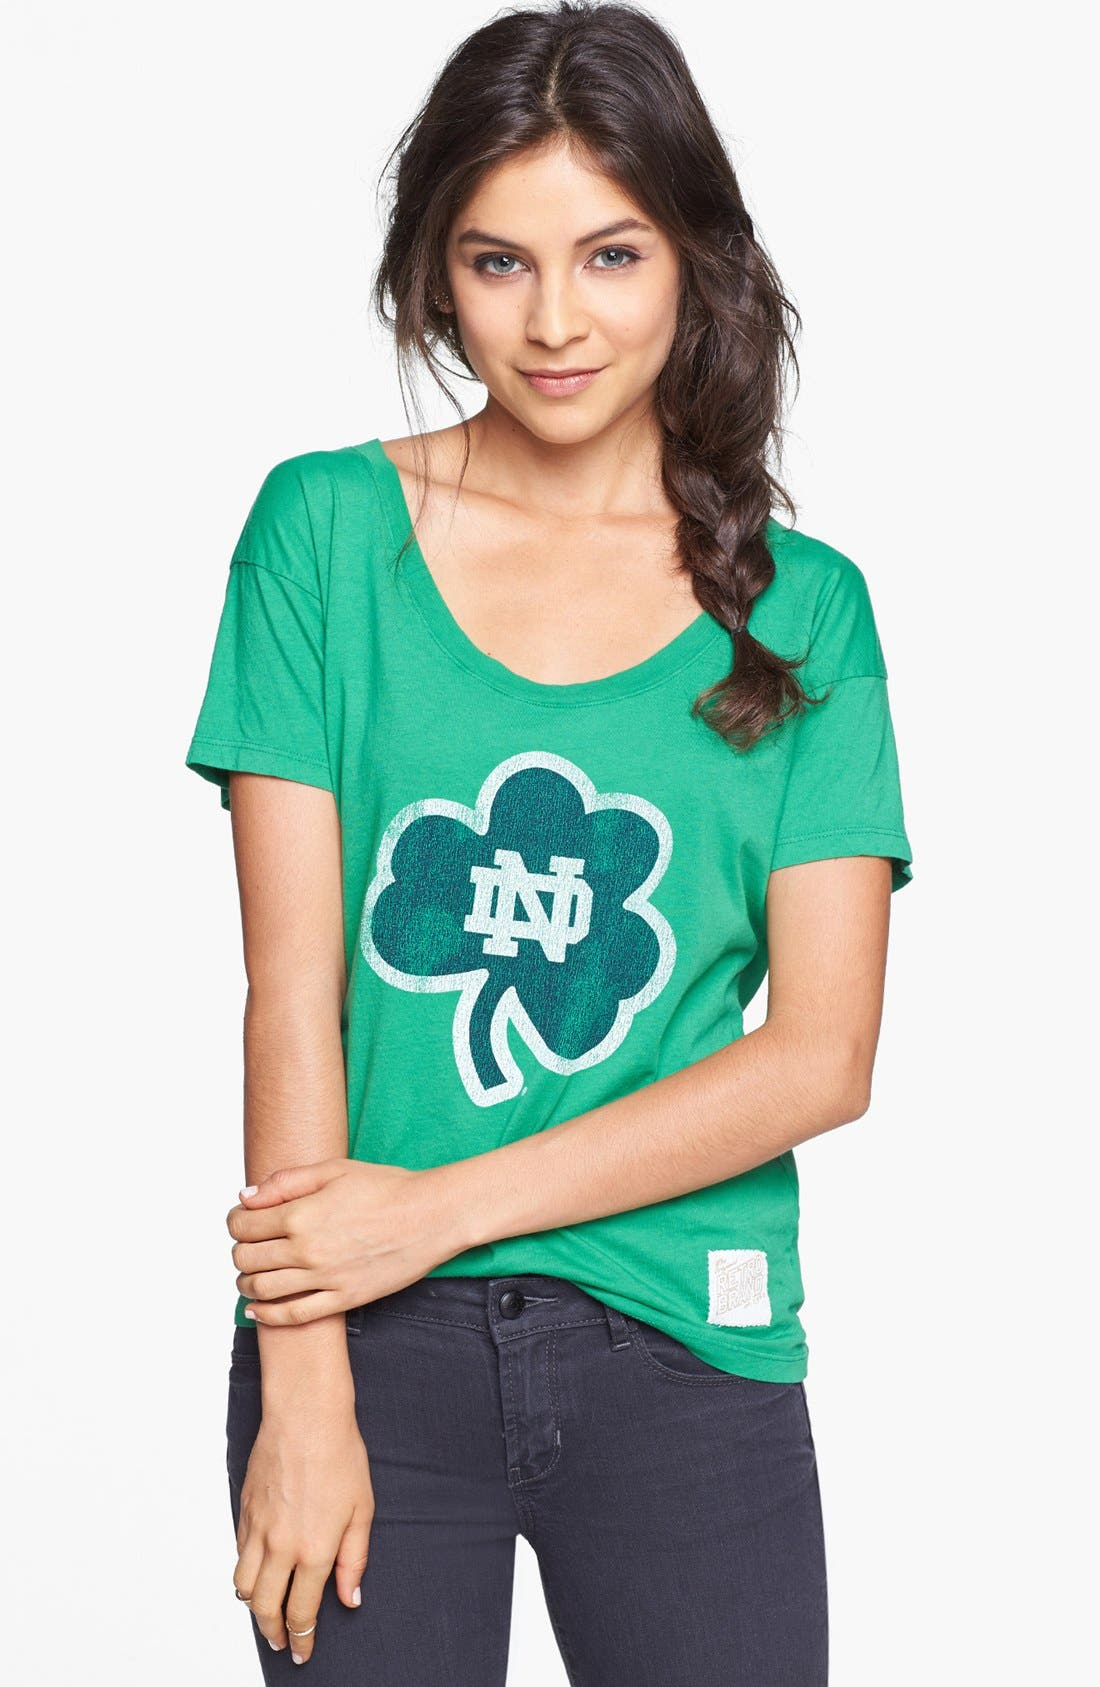 Alternate Image 1 Selected - Retro Brand 'University of Notre Dame Fighting Irish' Graphic Tee (Juniors)